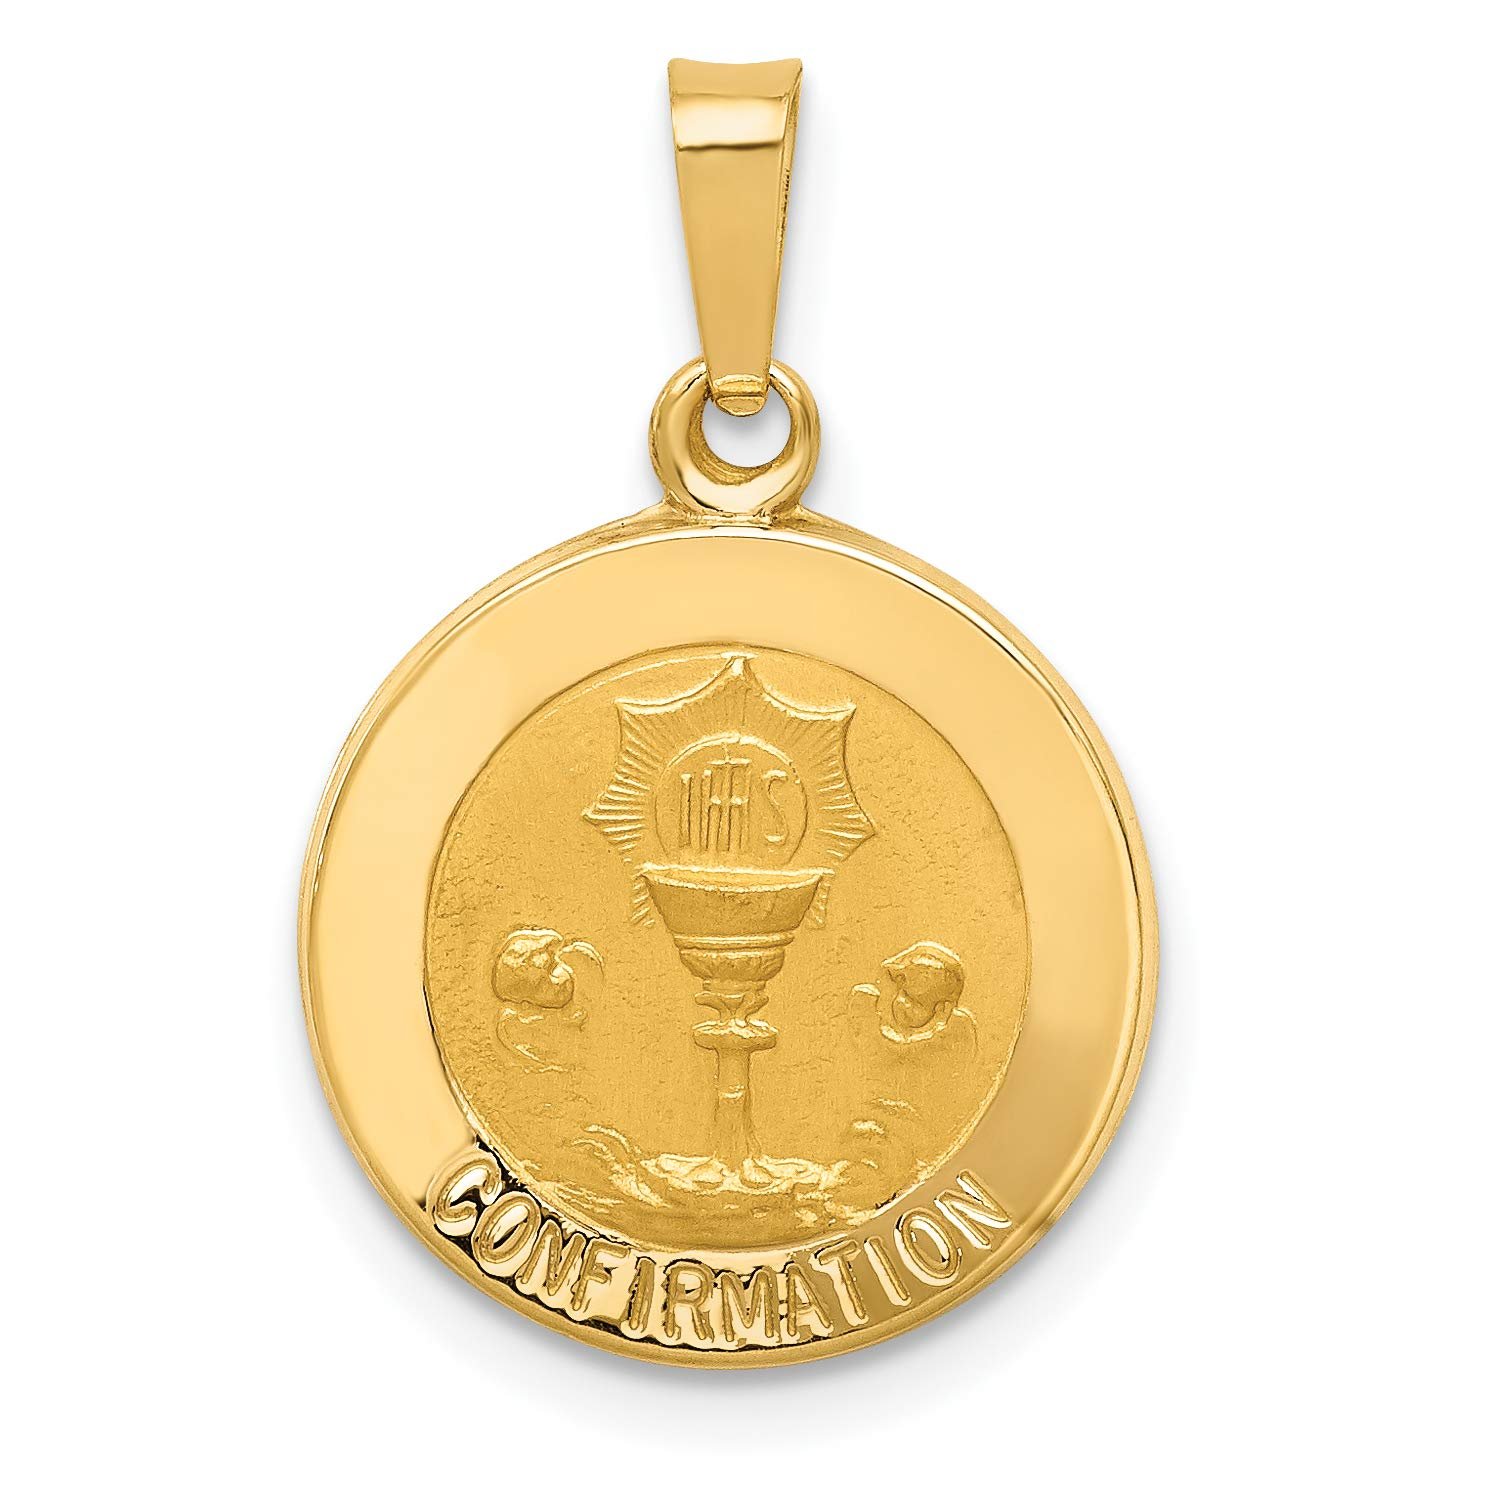 14k Yellow Gold Cup And IHS Confirmation Words On Round Medal Pendant 18x15mm